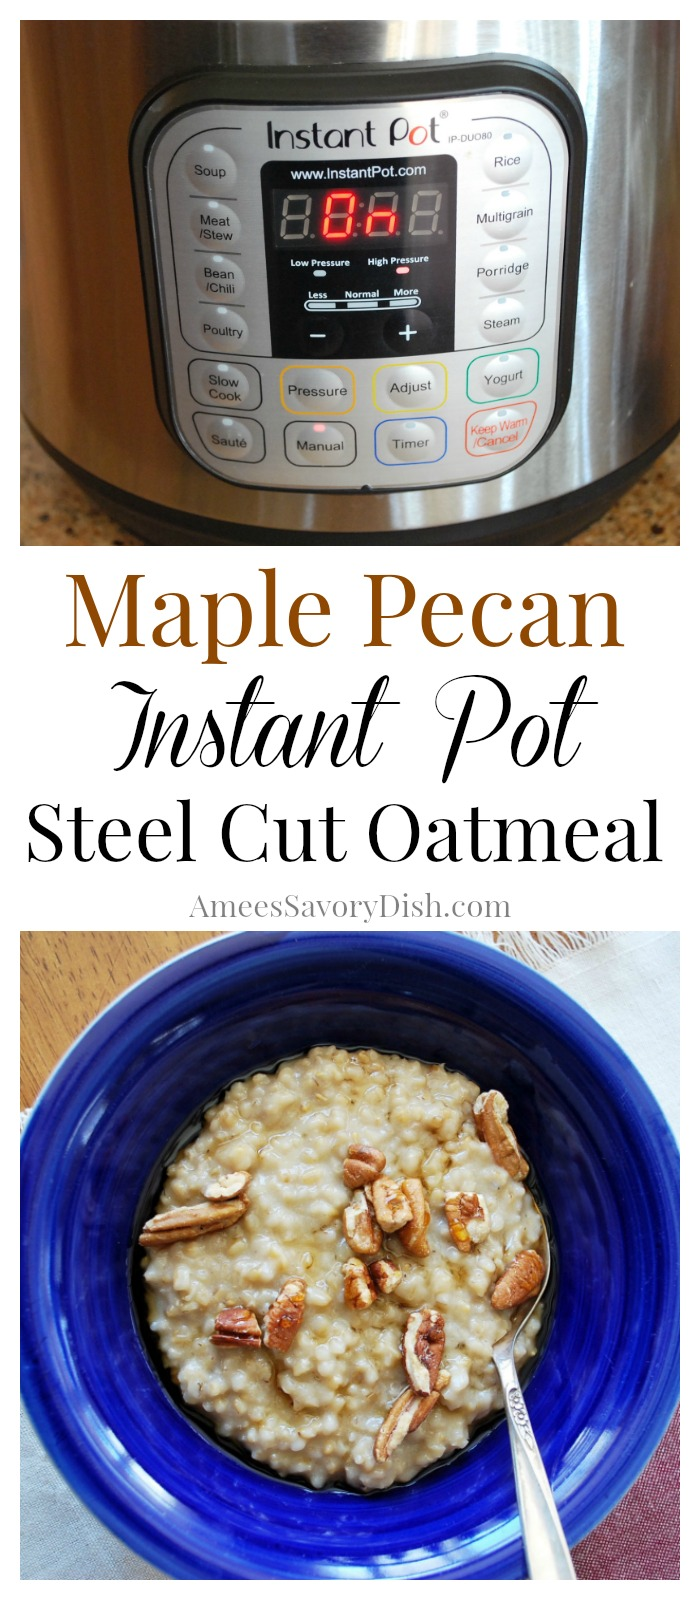 Maple Pecan Instant Pot Steel Cut Oatmeal via @Ameecooks